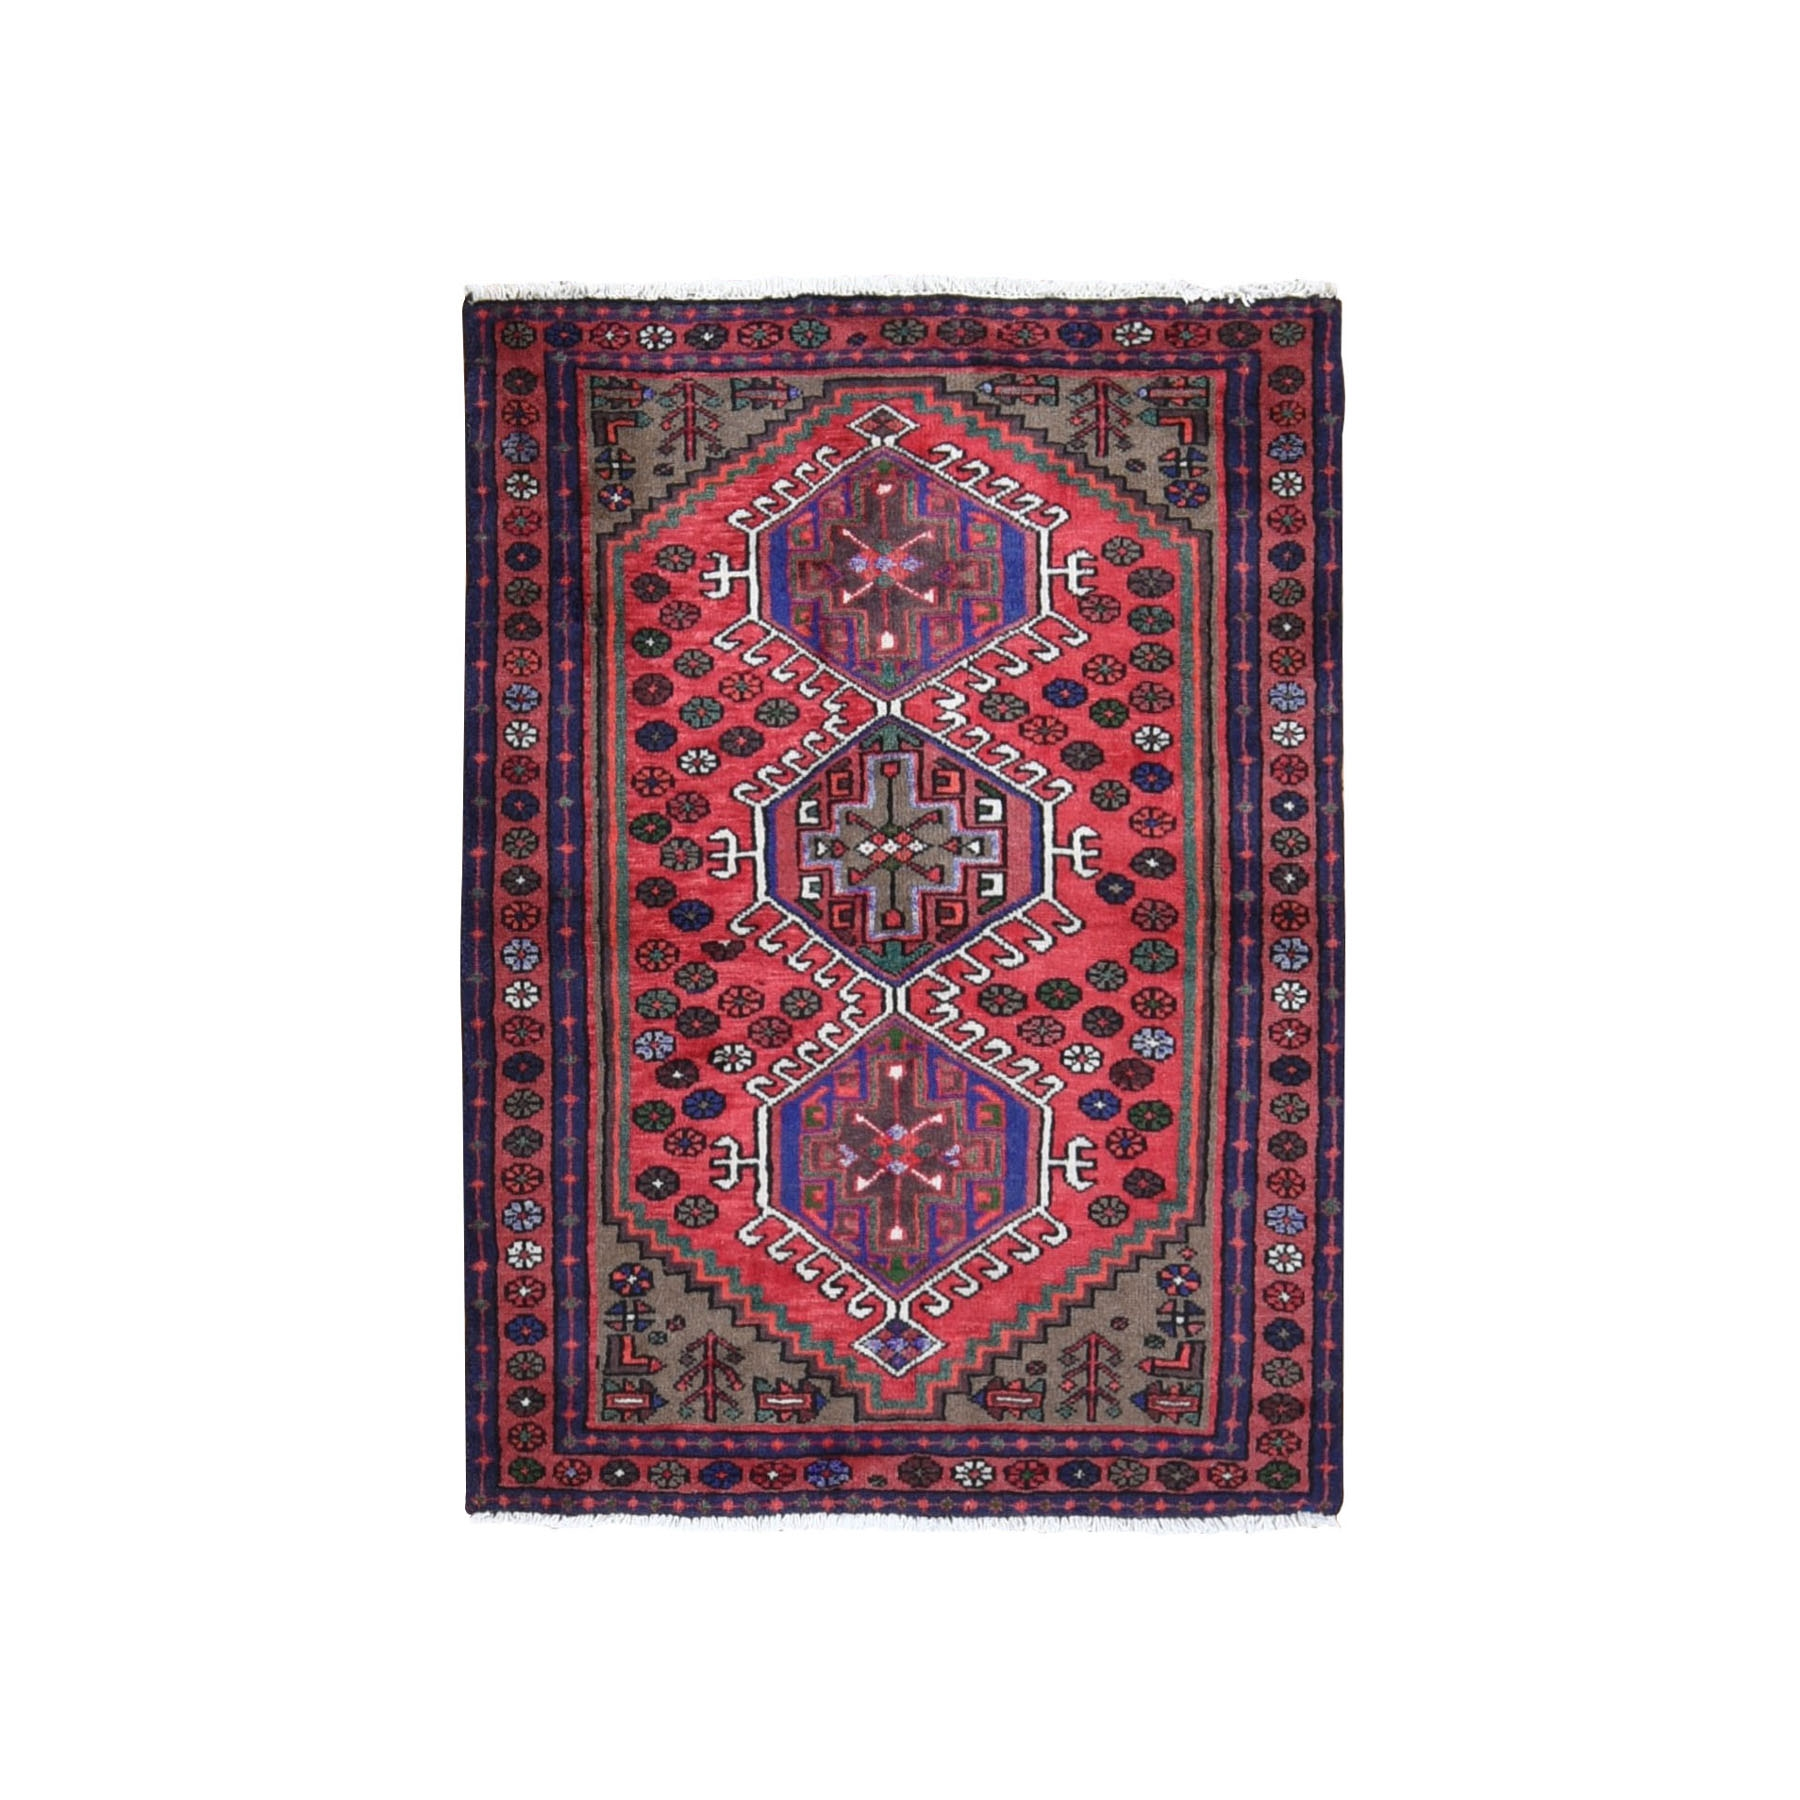 "3'5""x4'9"" Red New Persian Karajeh Geometric Design pure Wool Hand Knotted Bohemian Rug"